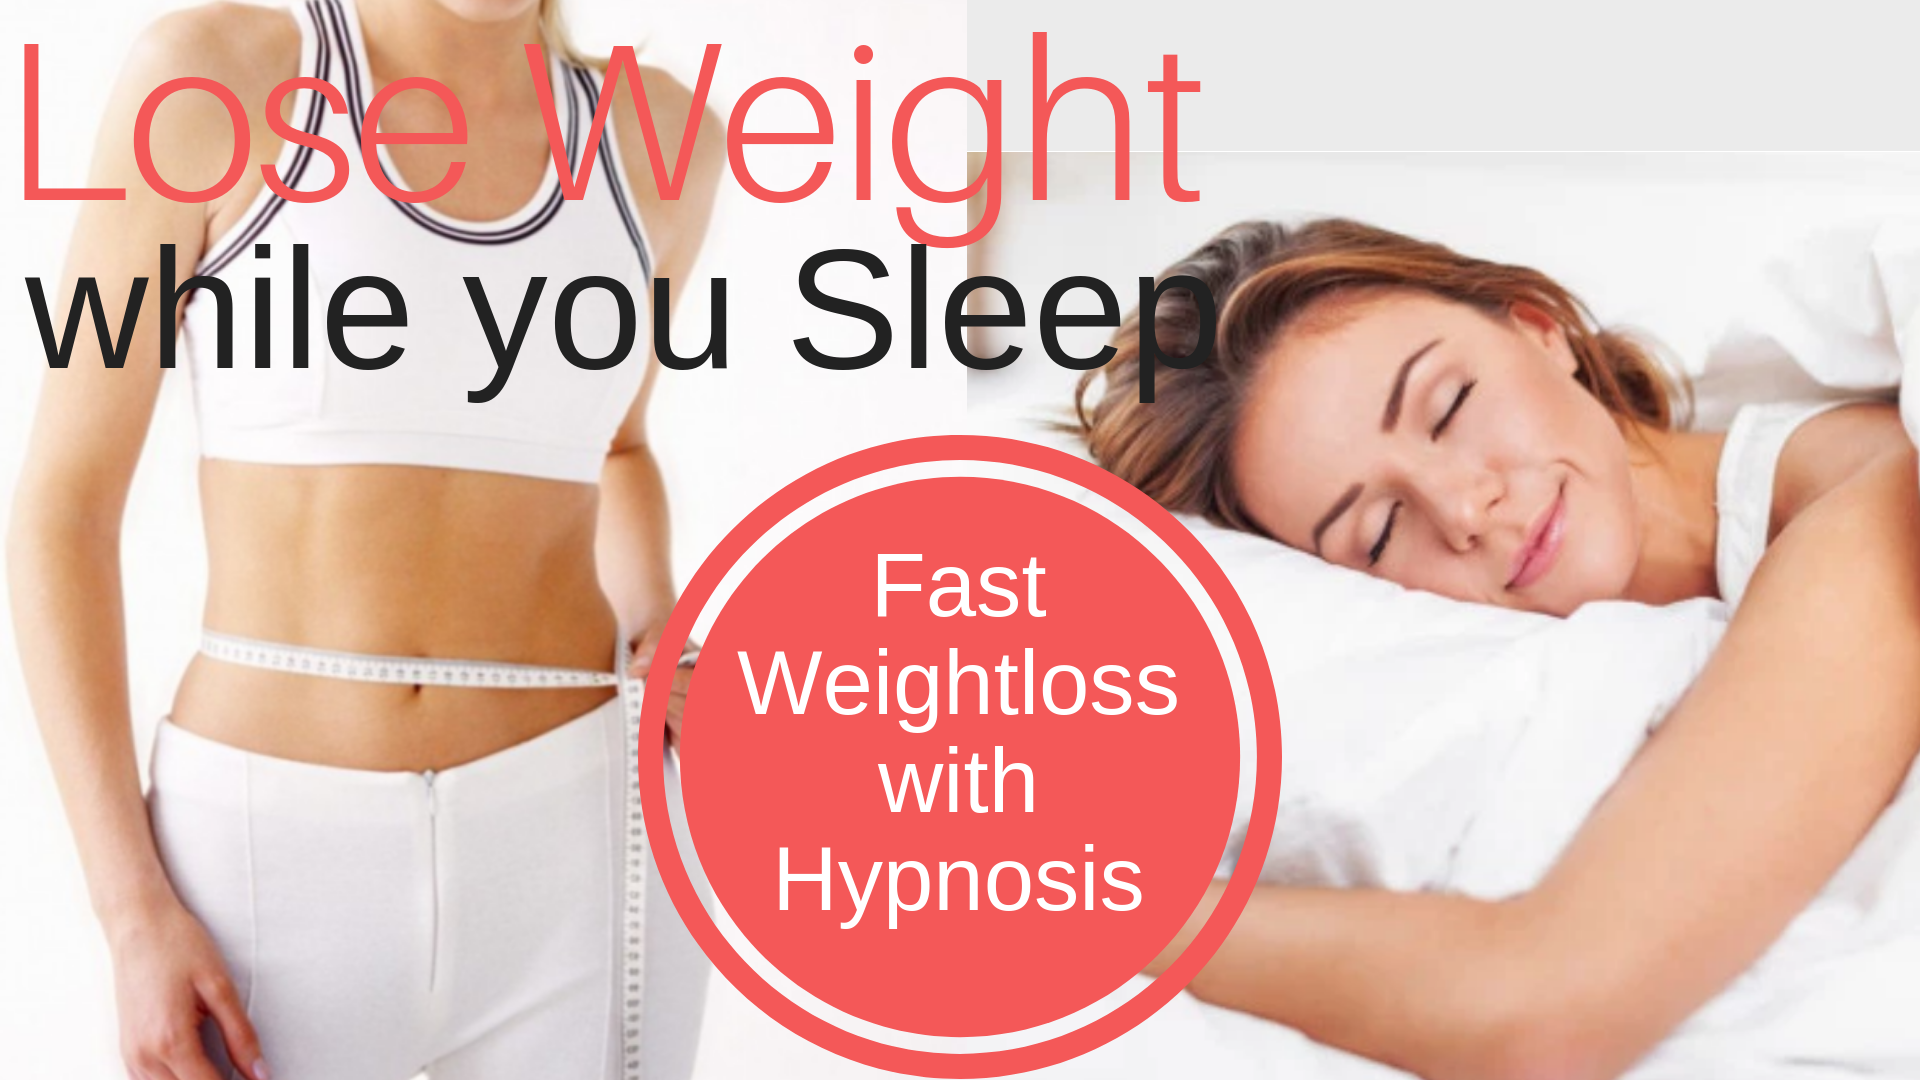 LOSE WEIGHT while you SLEEP ★ Fast Weight Loss Hypnosis